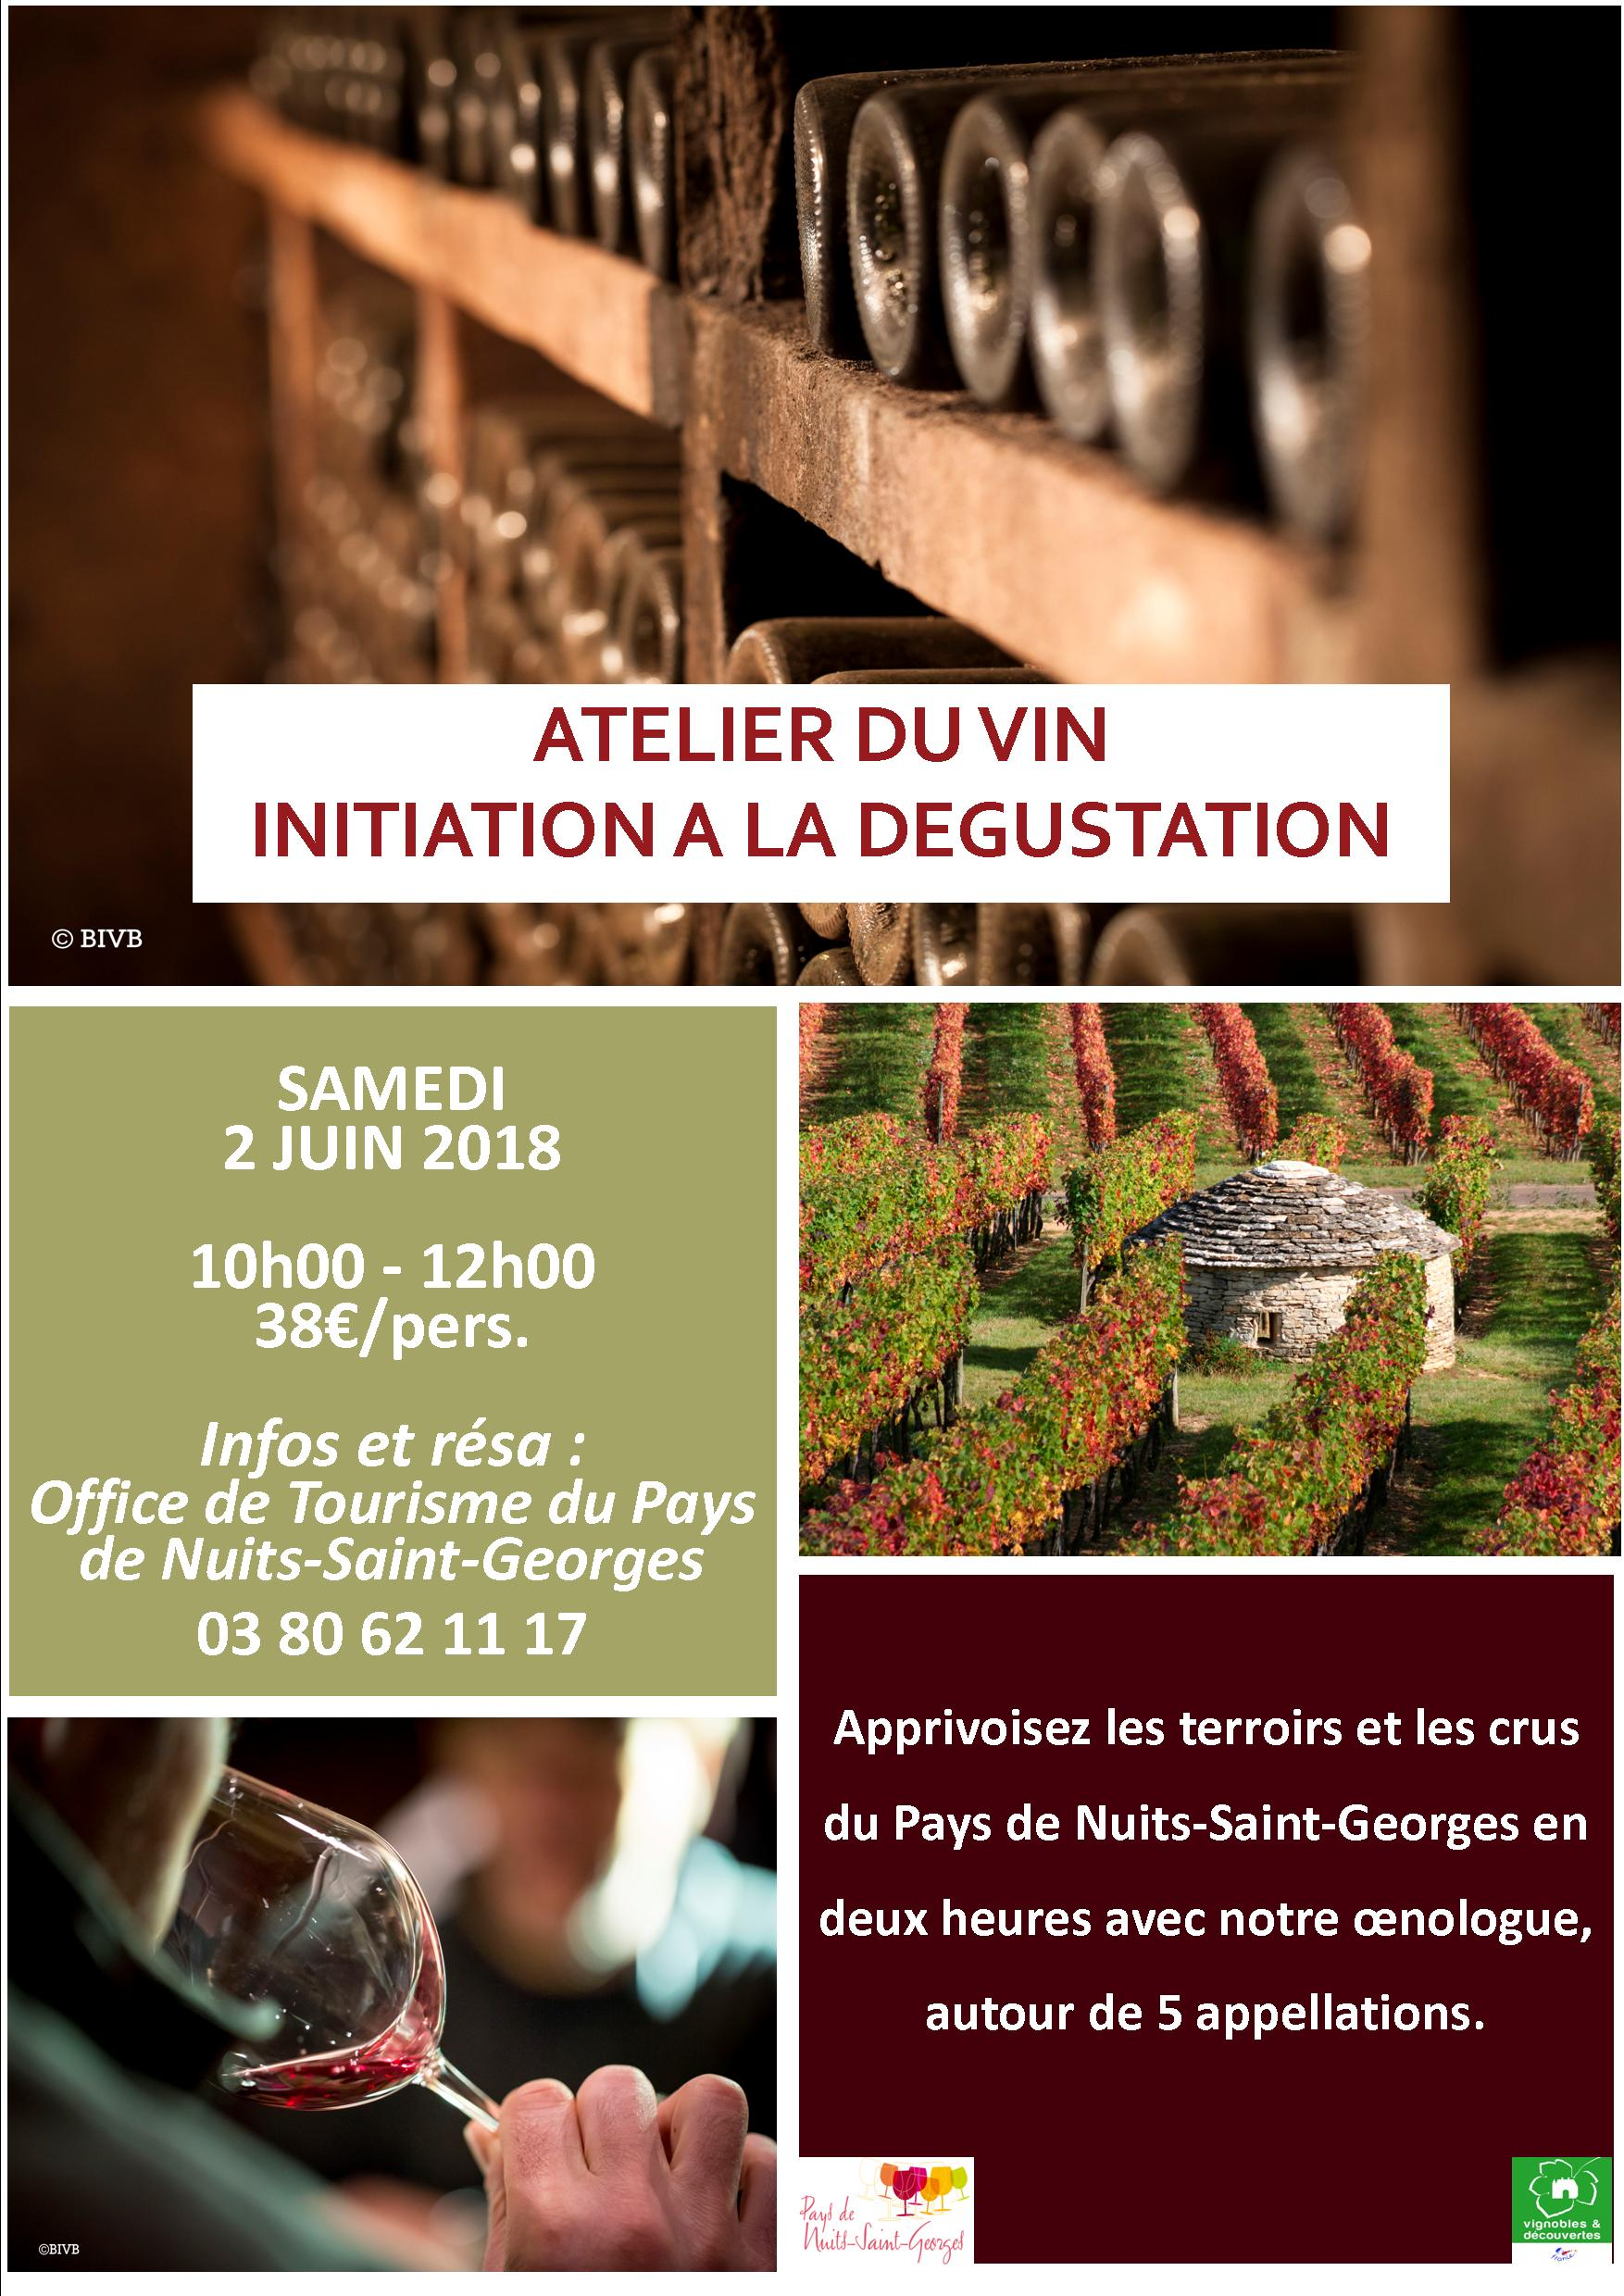 Atelier du vin - Initiation à la dégustation